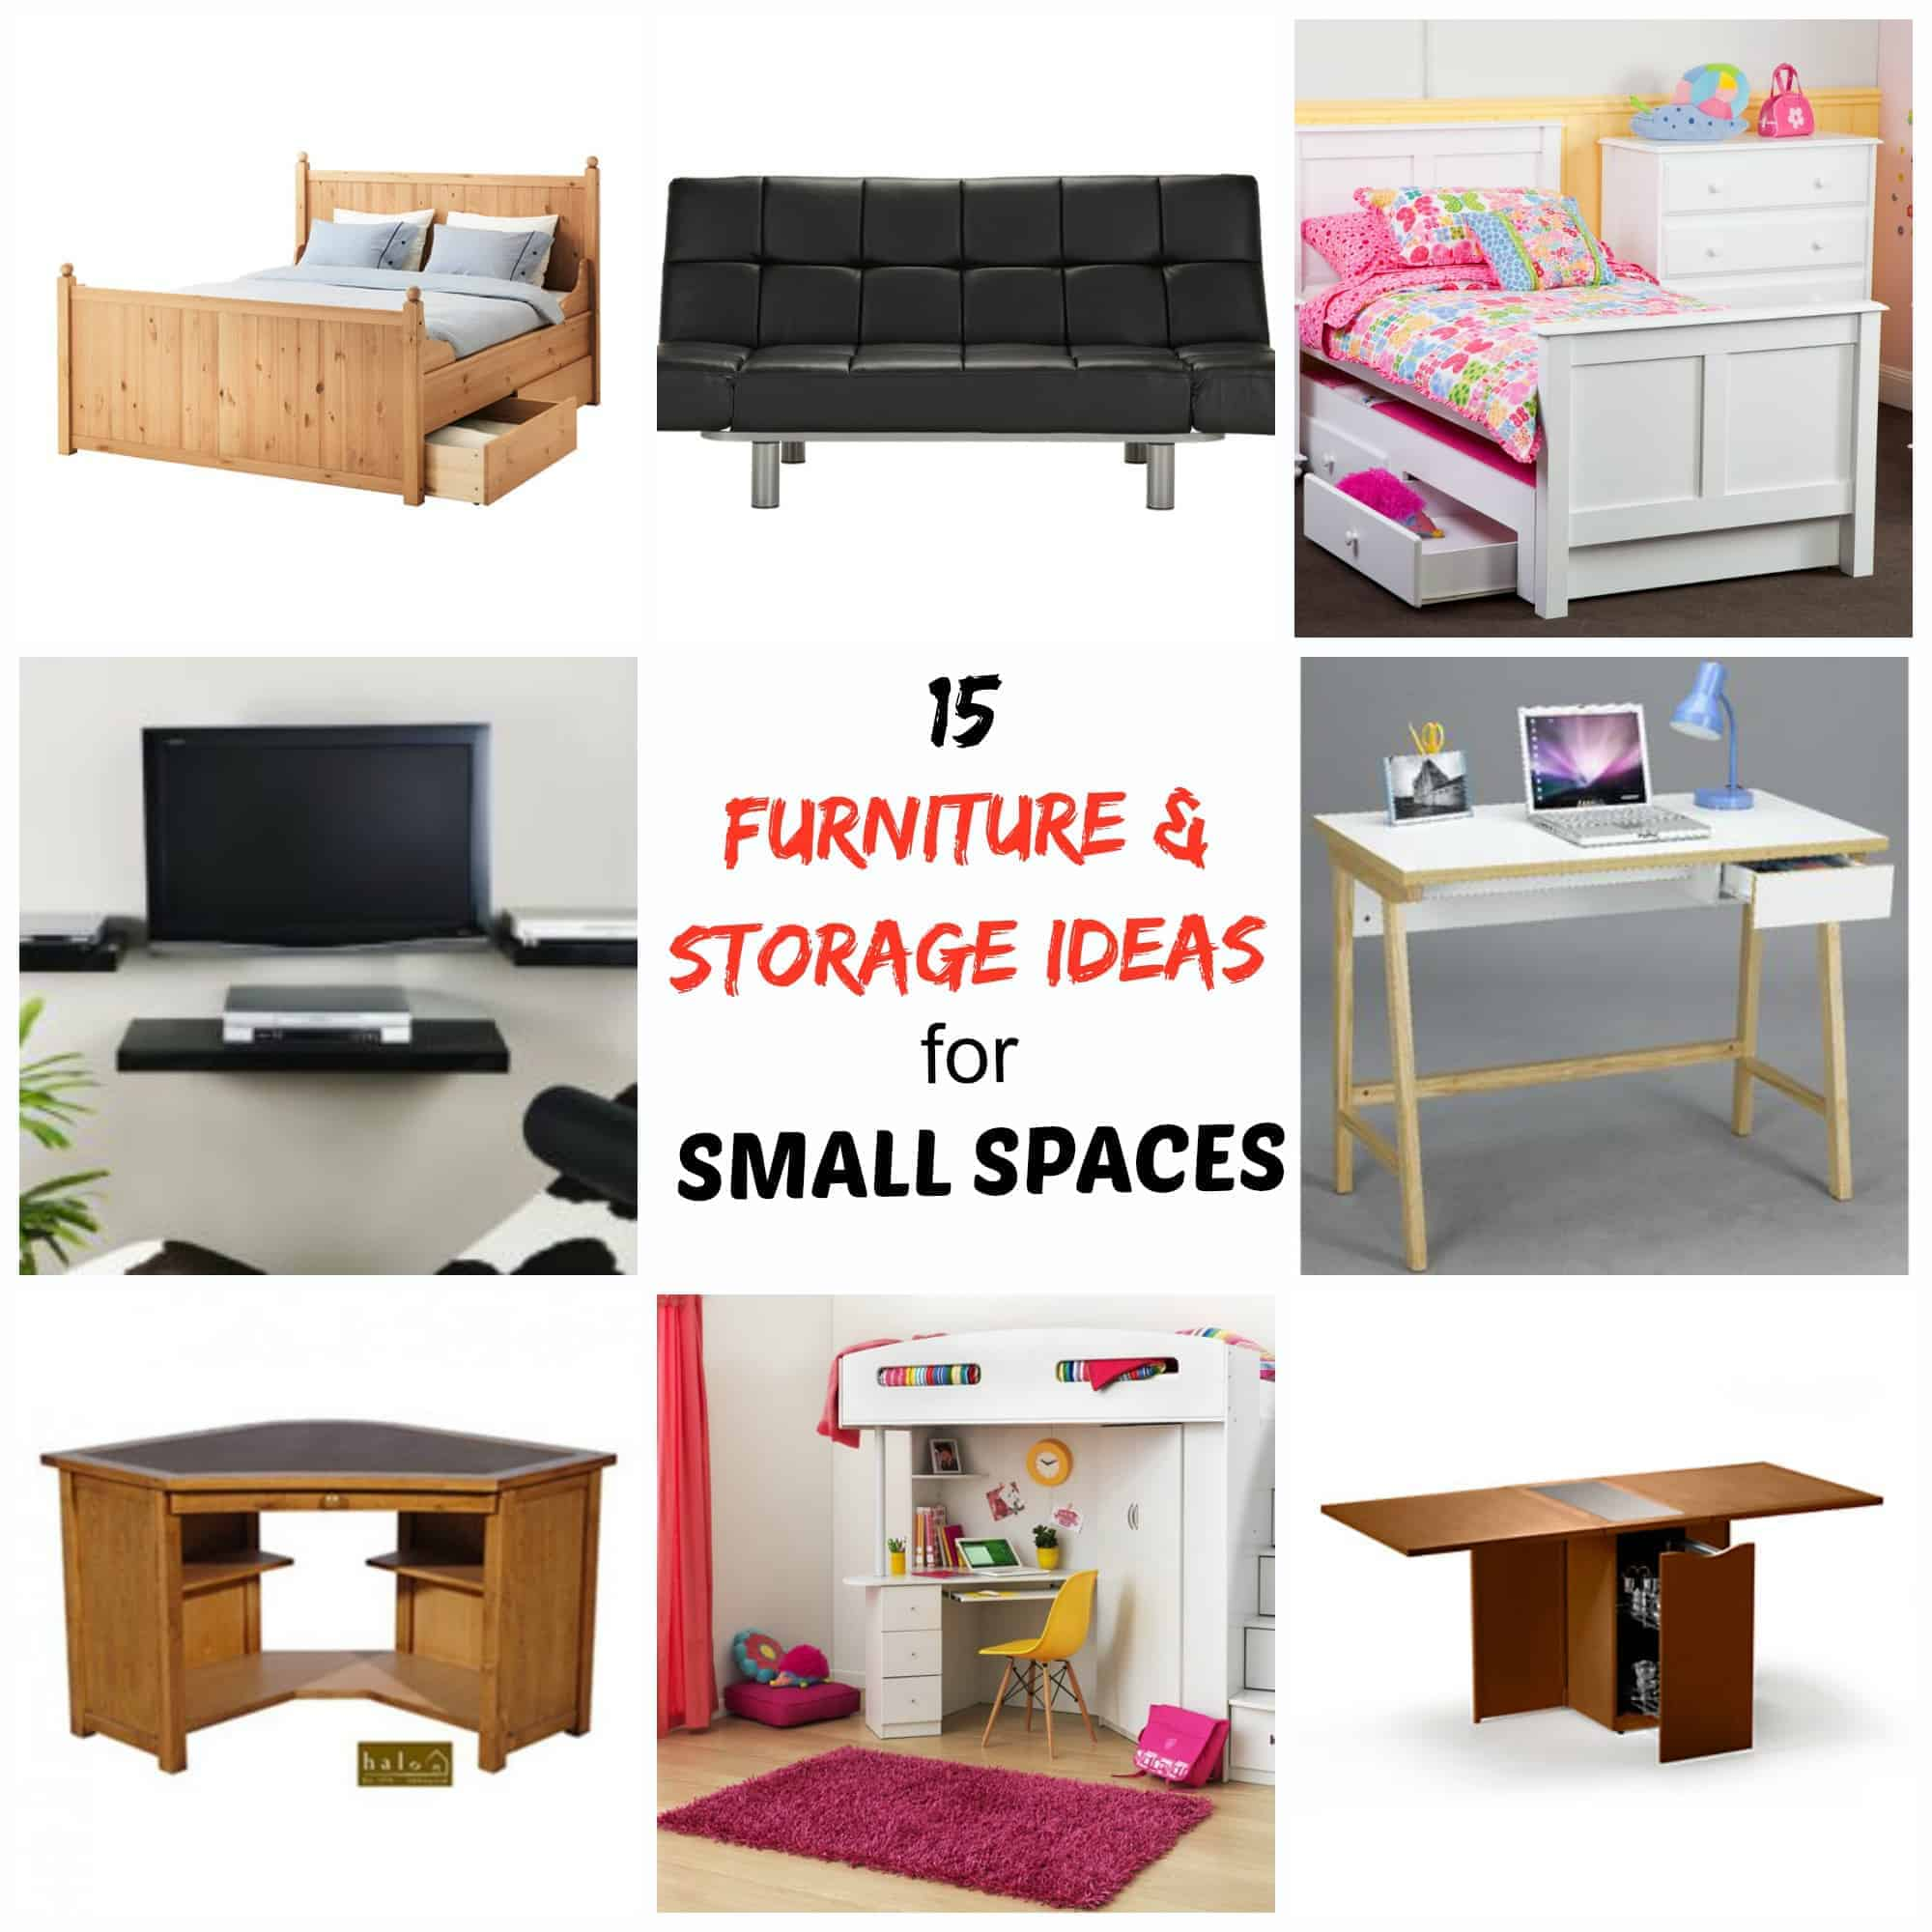 15 furniture storage ideas for small spaces simplify for Storage furniture for small spaces